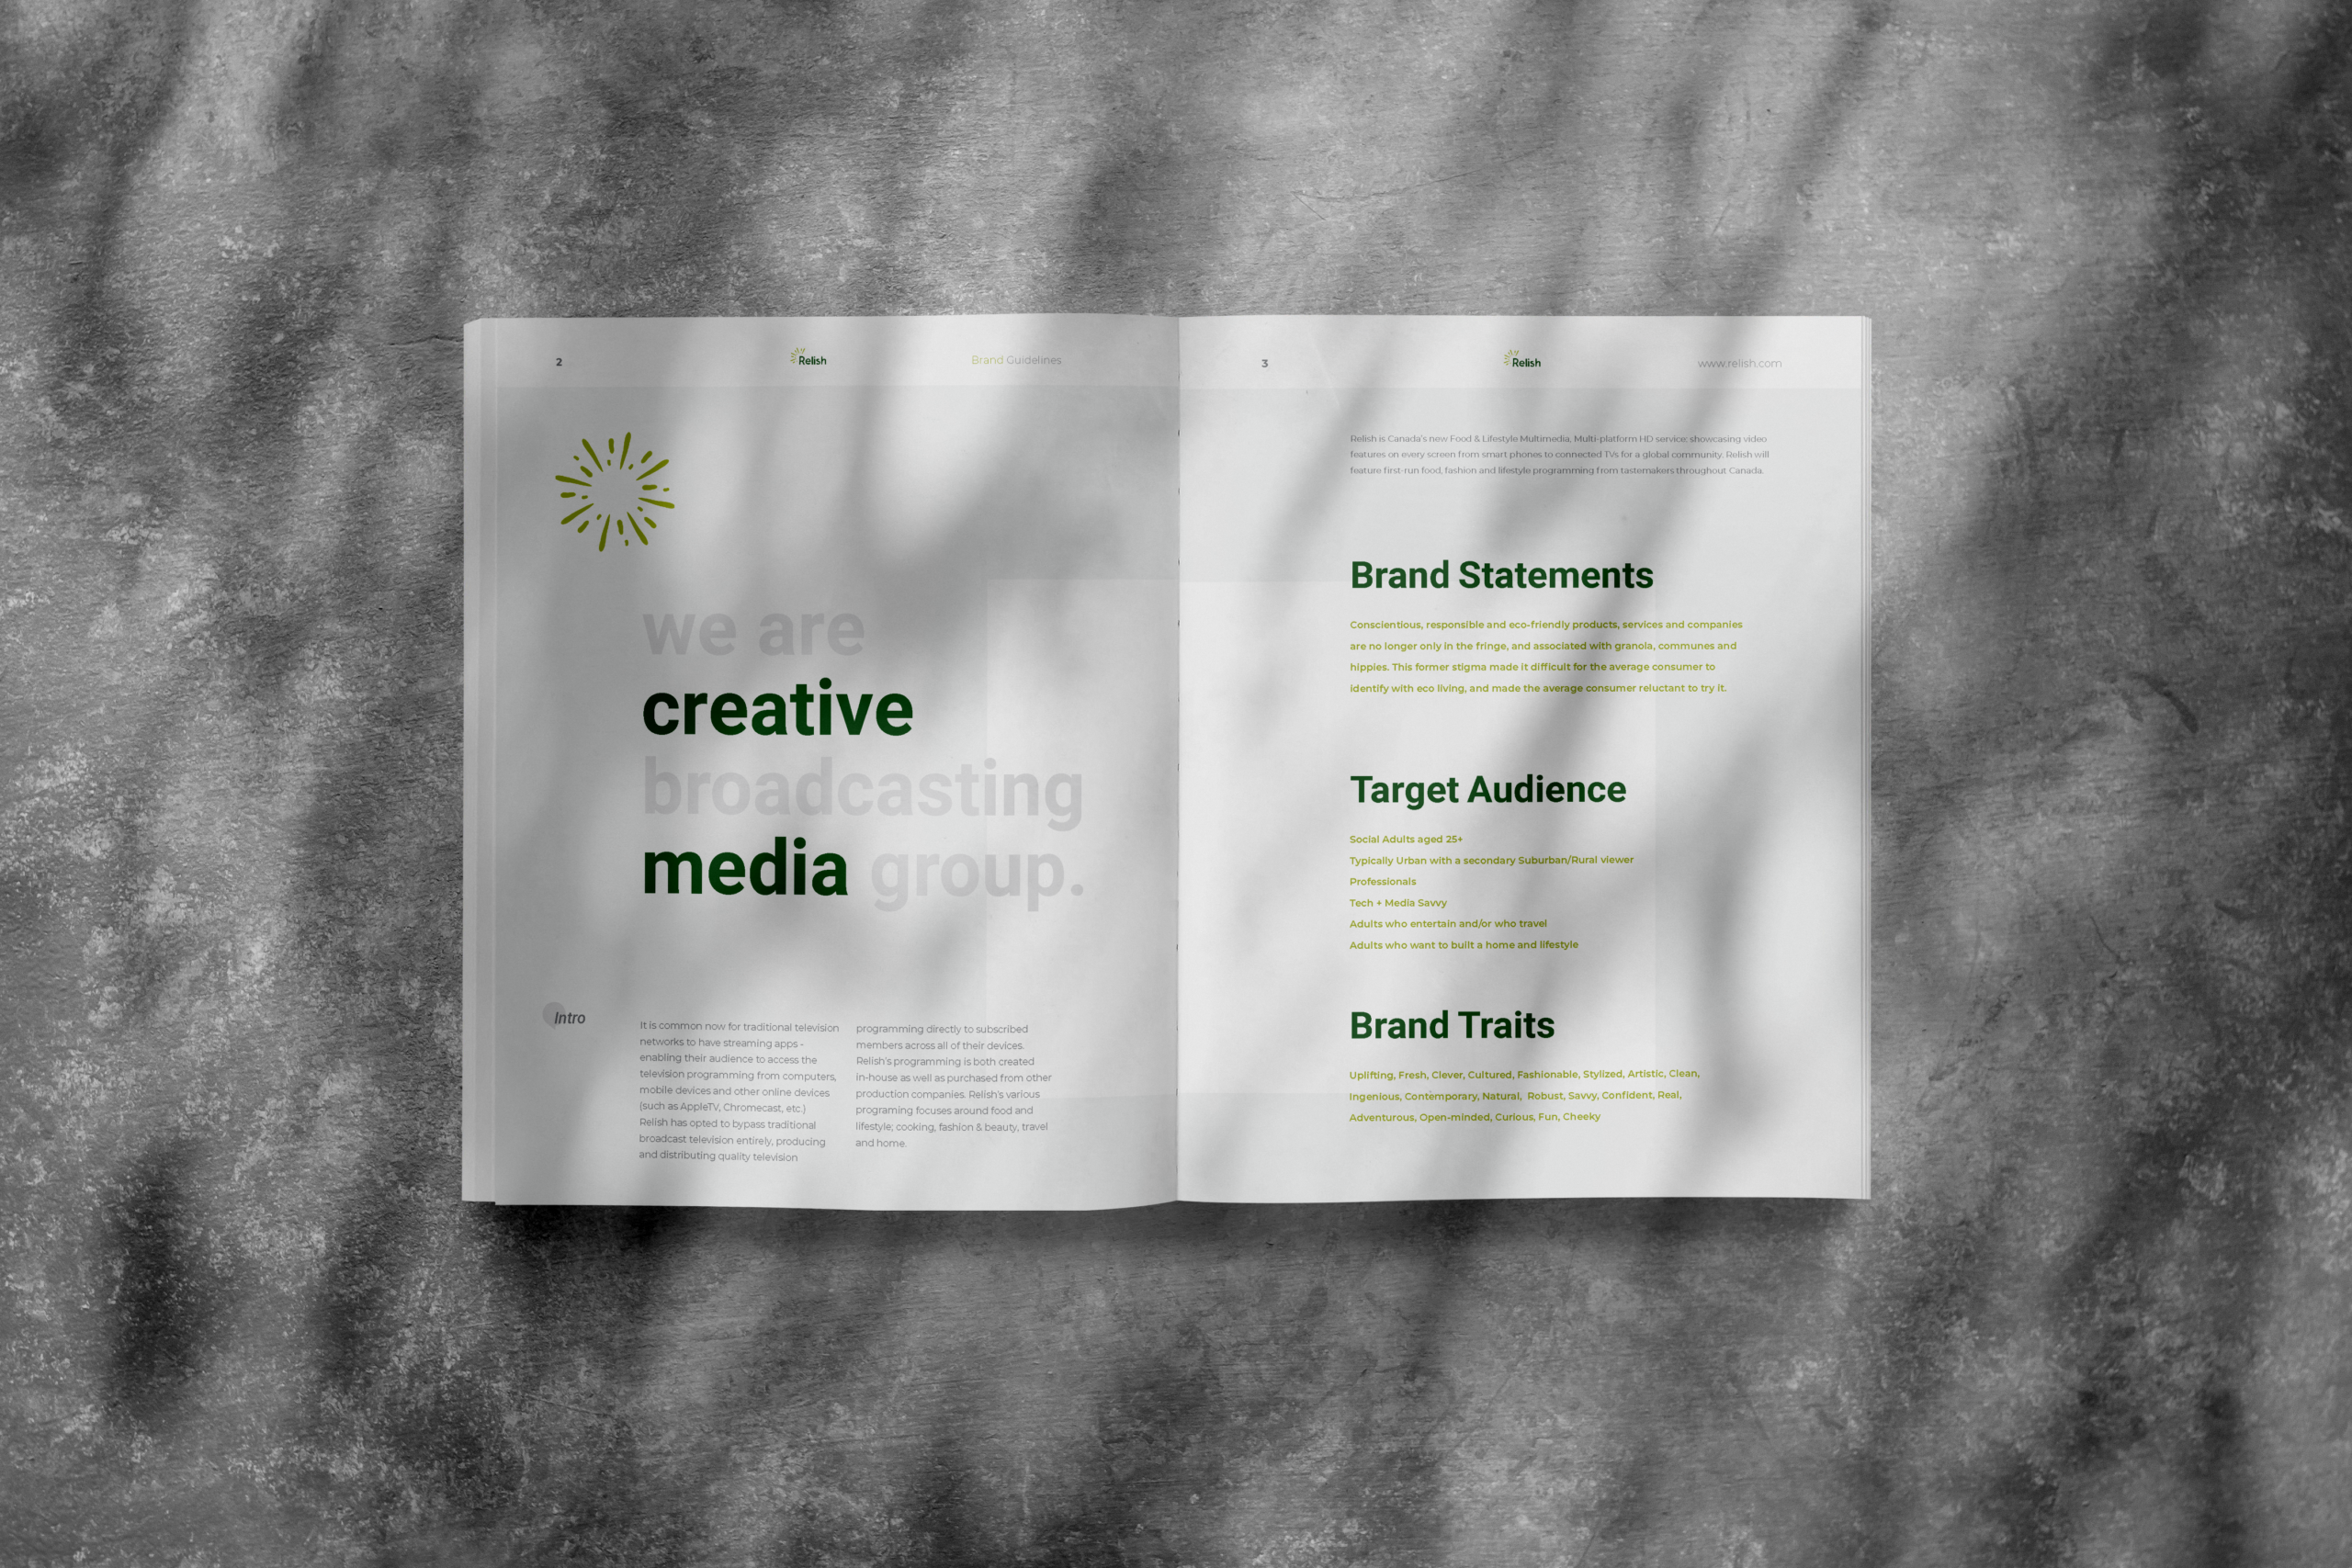 Branding & Style Guide created for Relish by Ace Digital